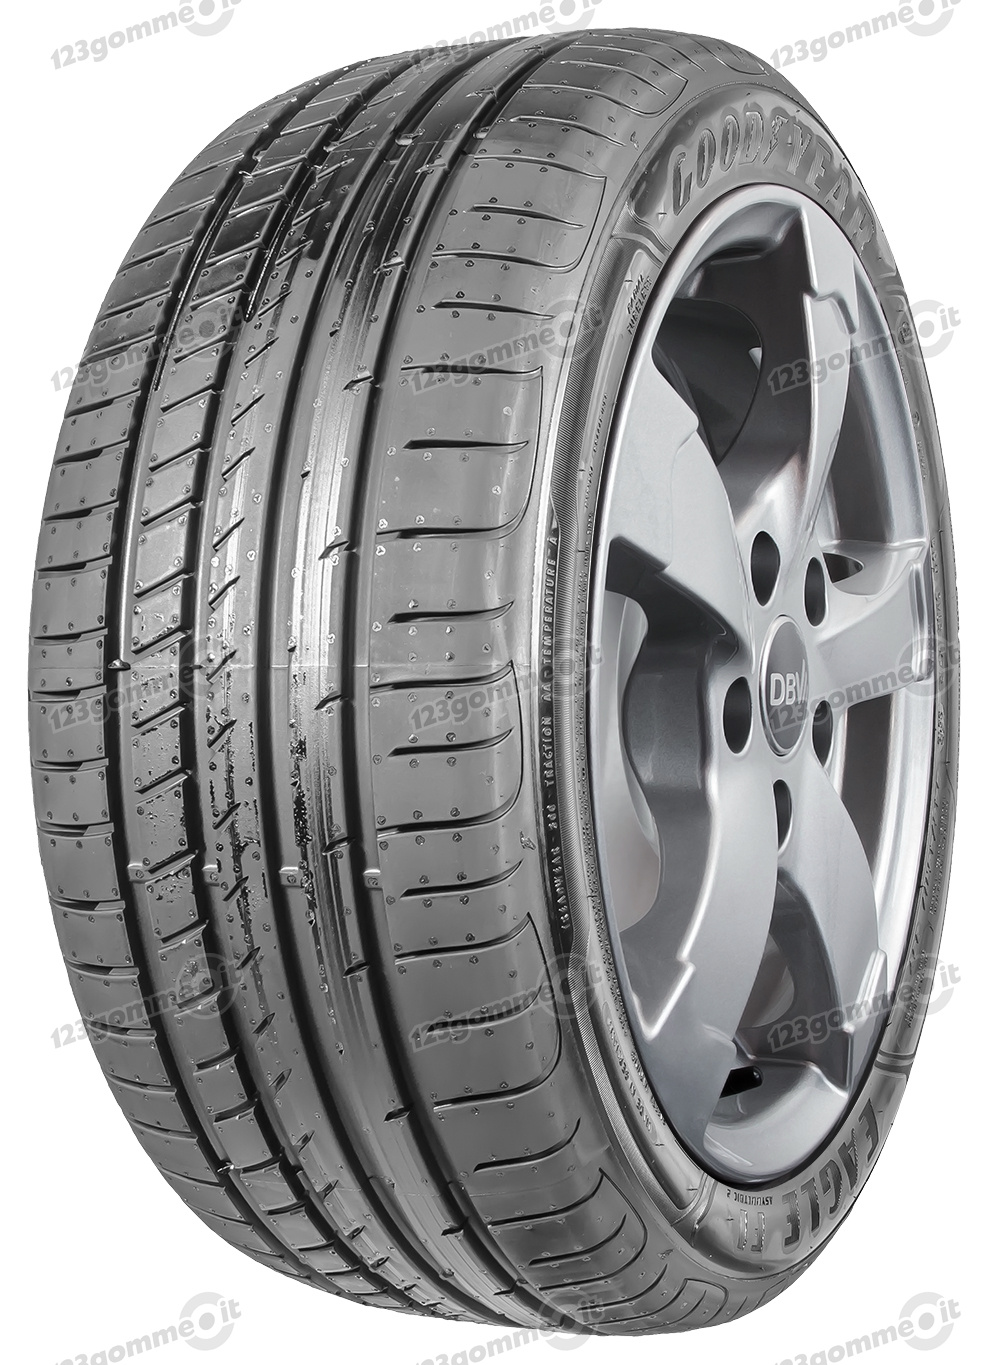 245/45 R18 100W Eagle F1 Asymmetric 2 XL FP  Eagle F1 Asymmetric 2 XL FP